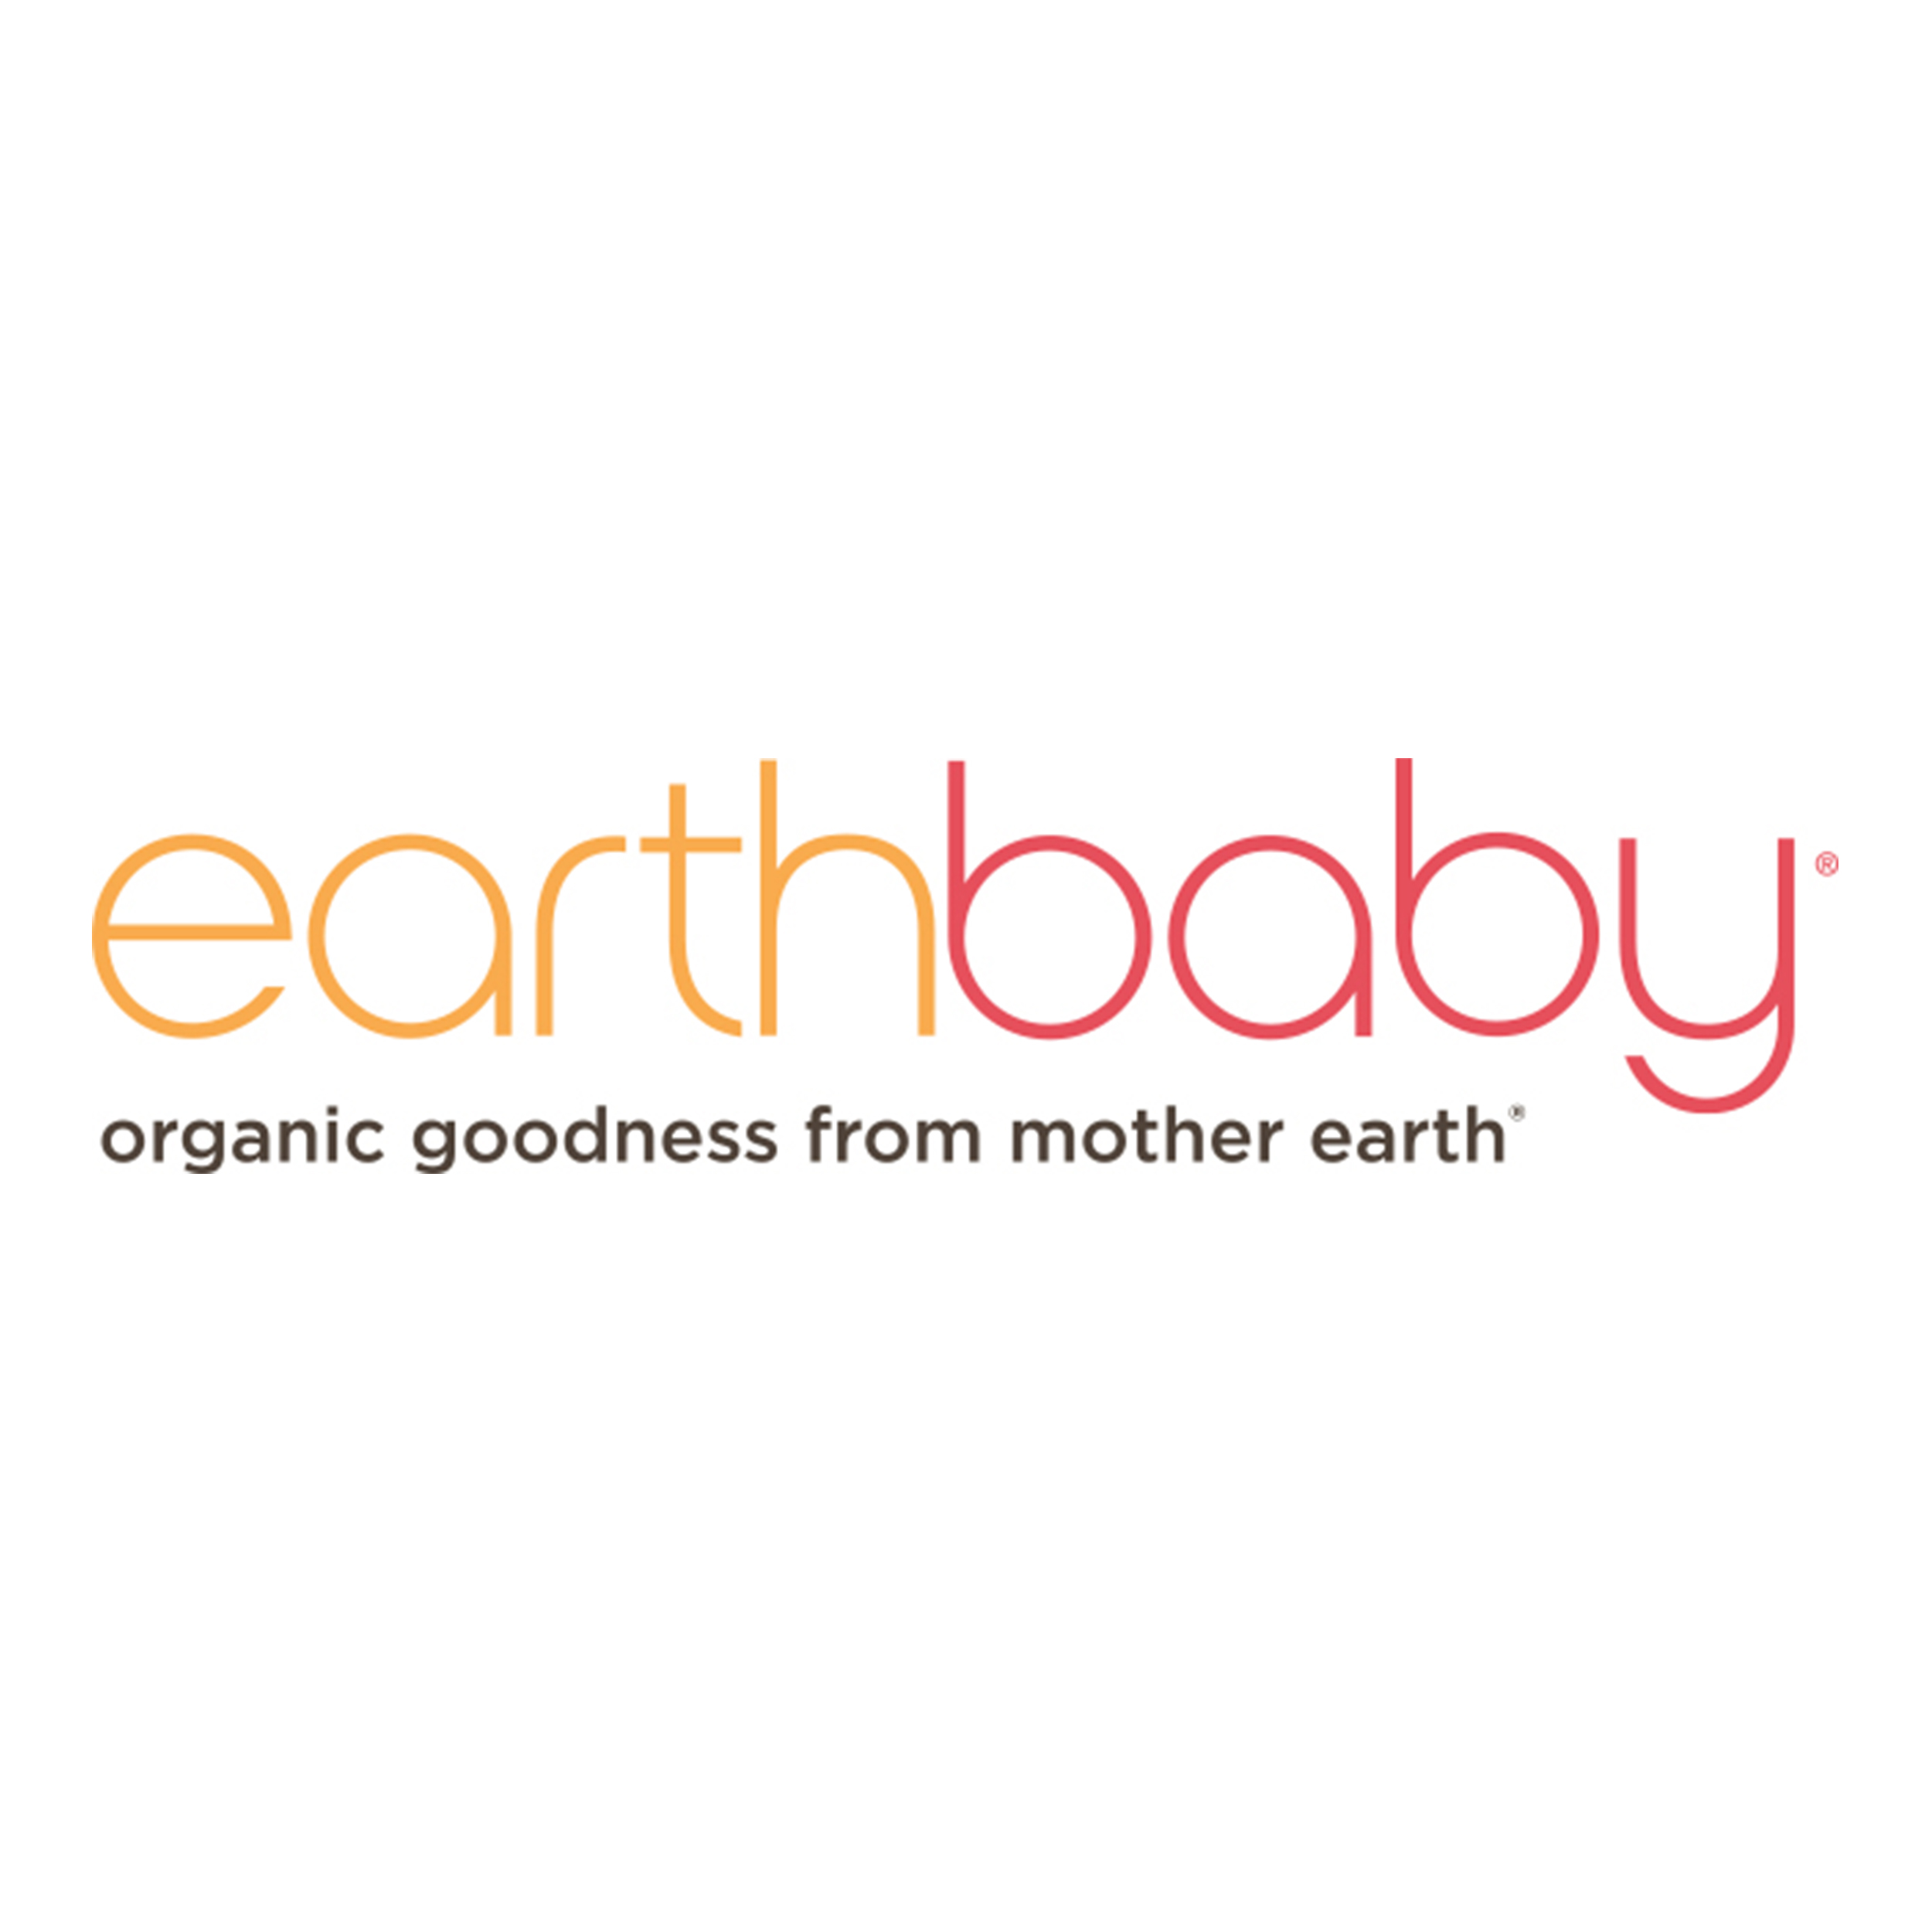 bt_logos_earthbaby_2500x2500.jpg